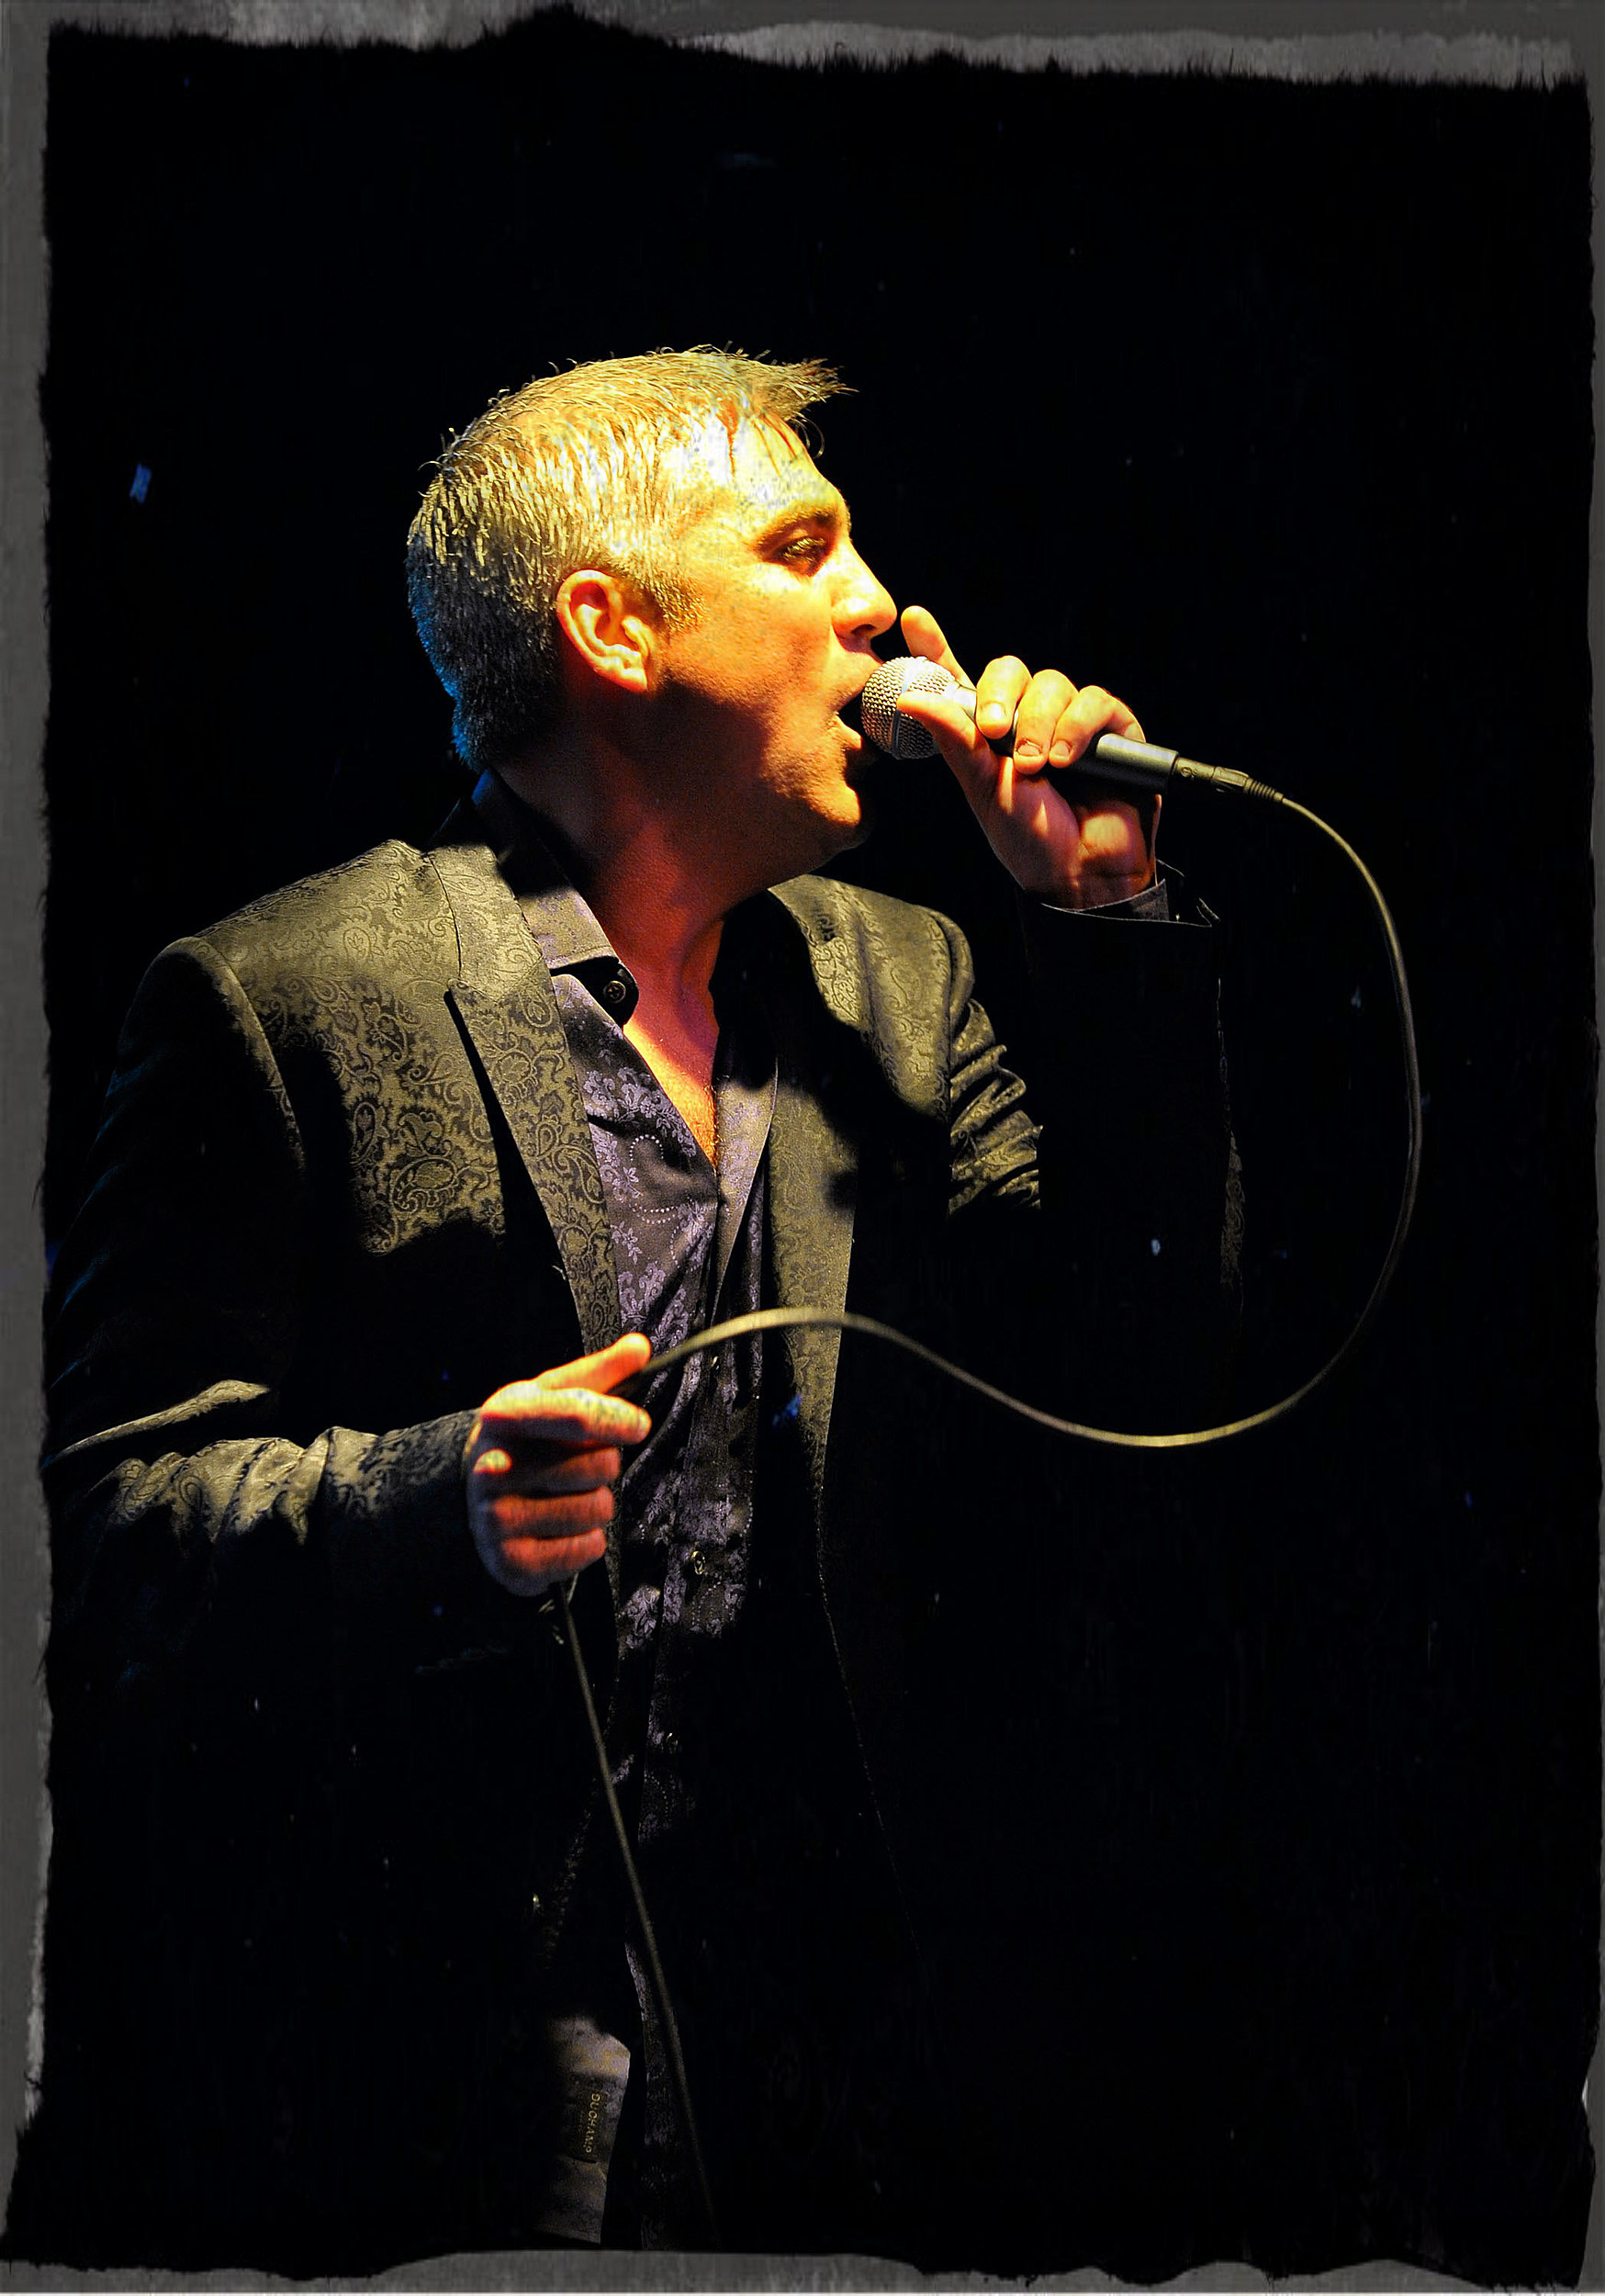 Taylor Hicks Performs At The Roxy Theatre